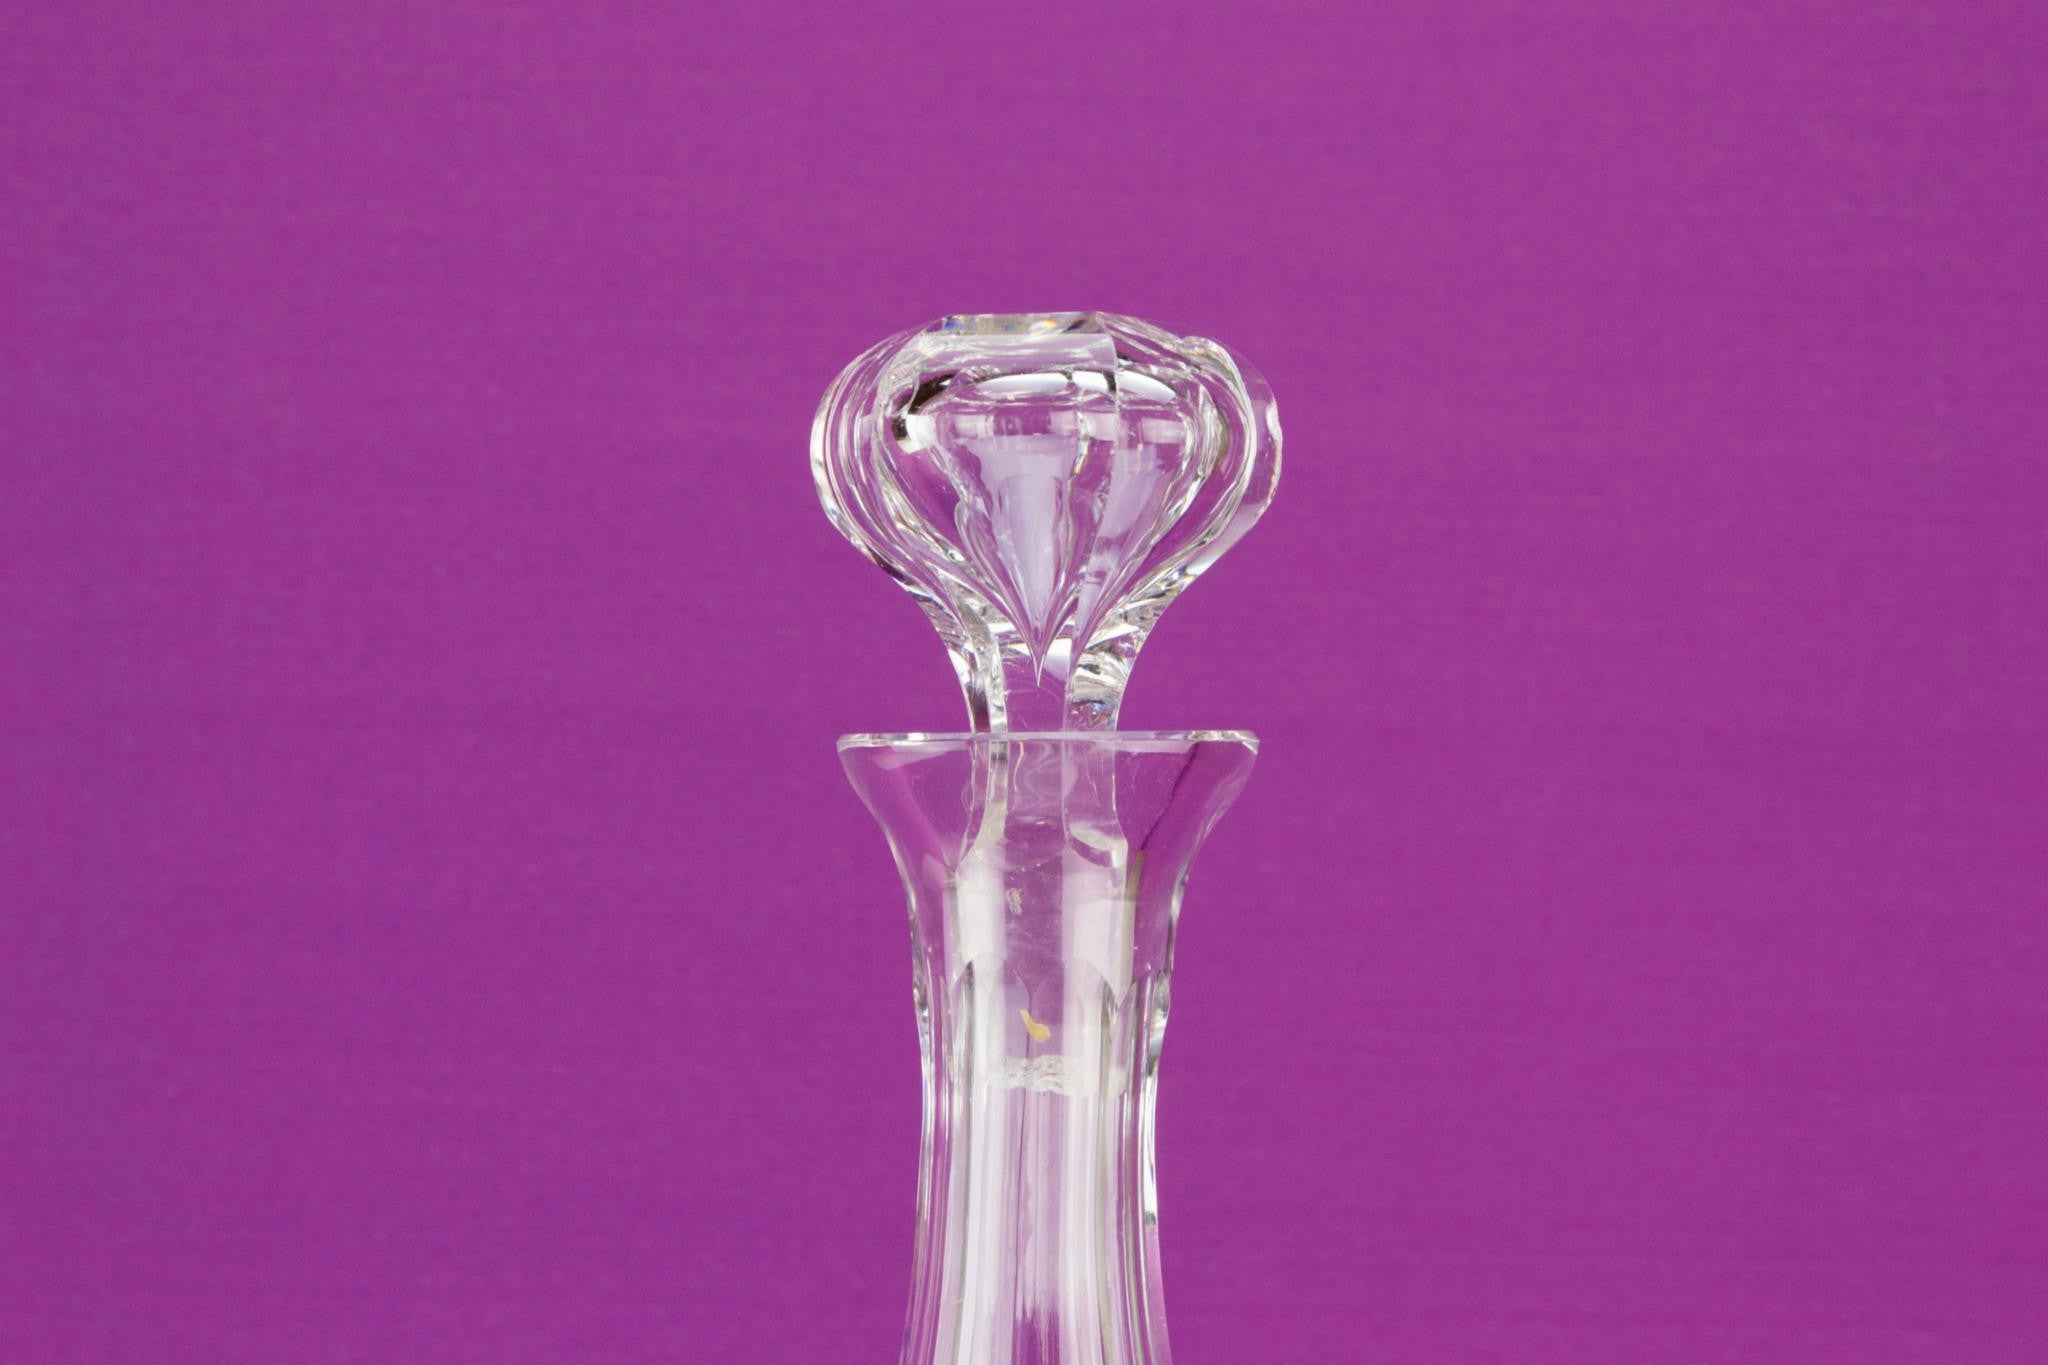 Cut glass tall decanter